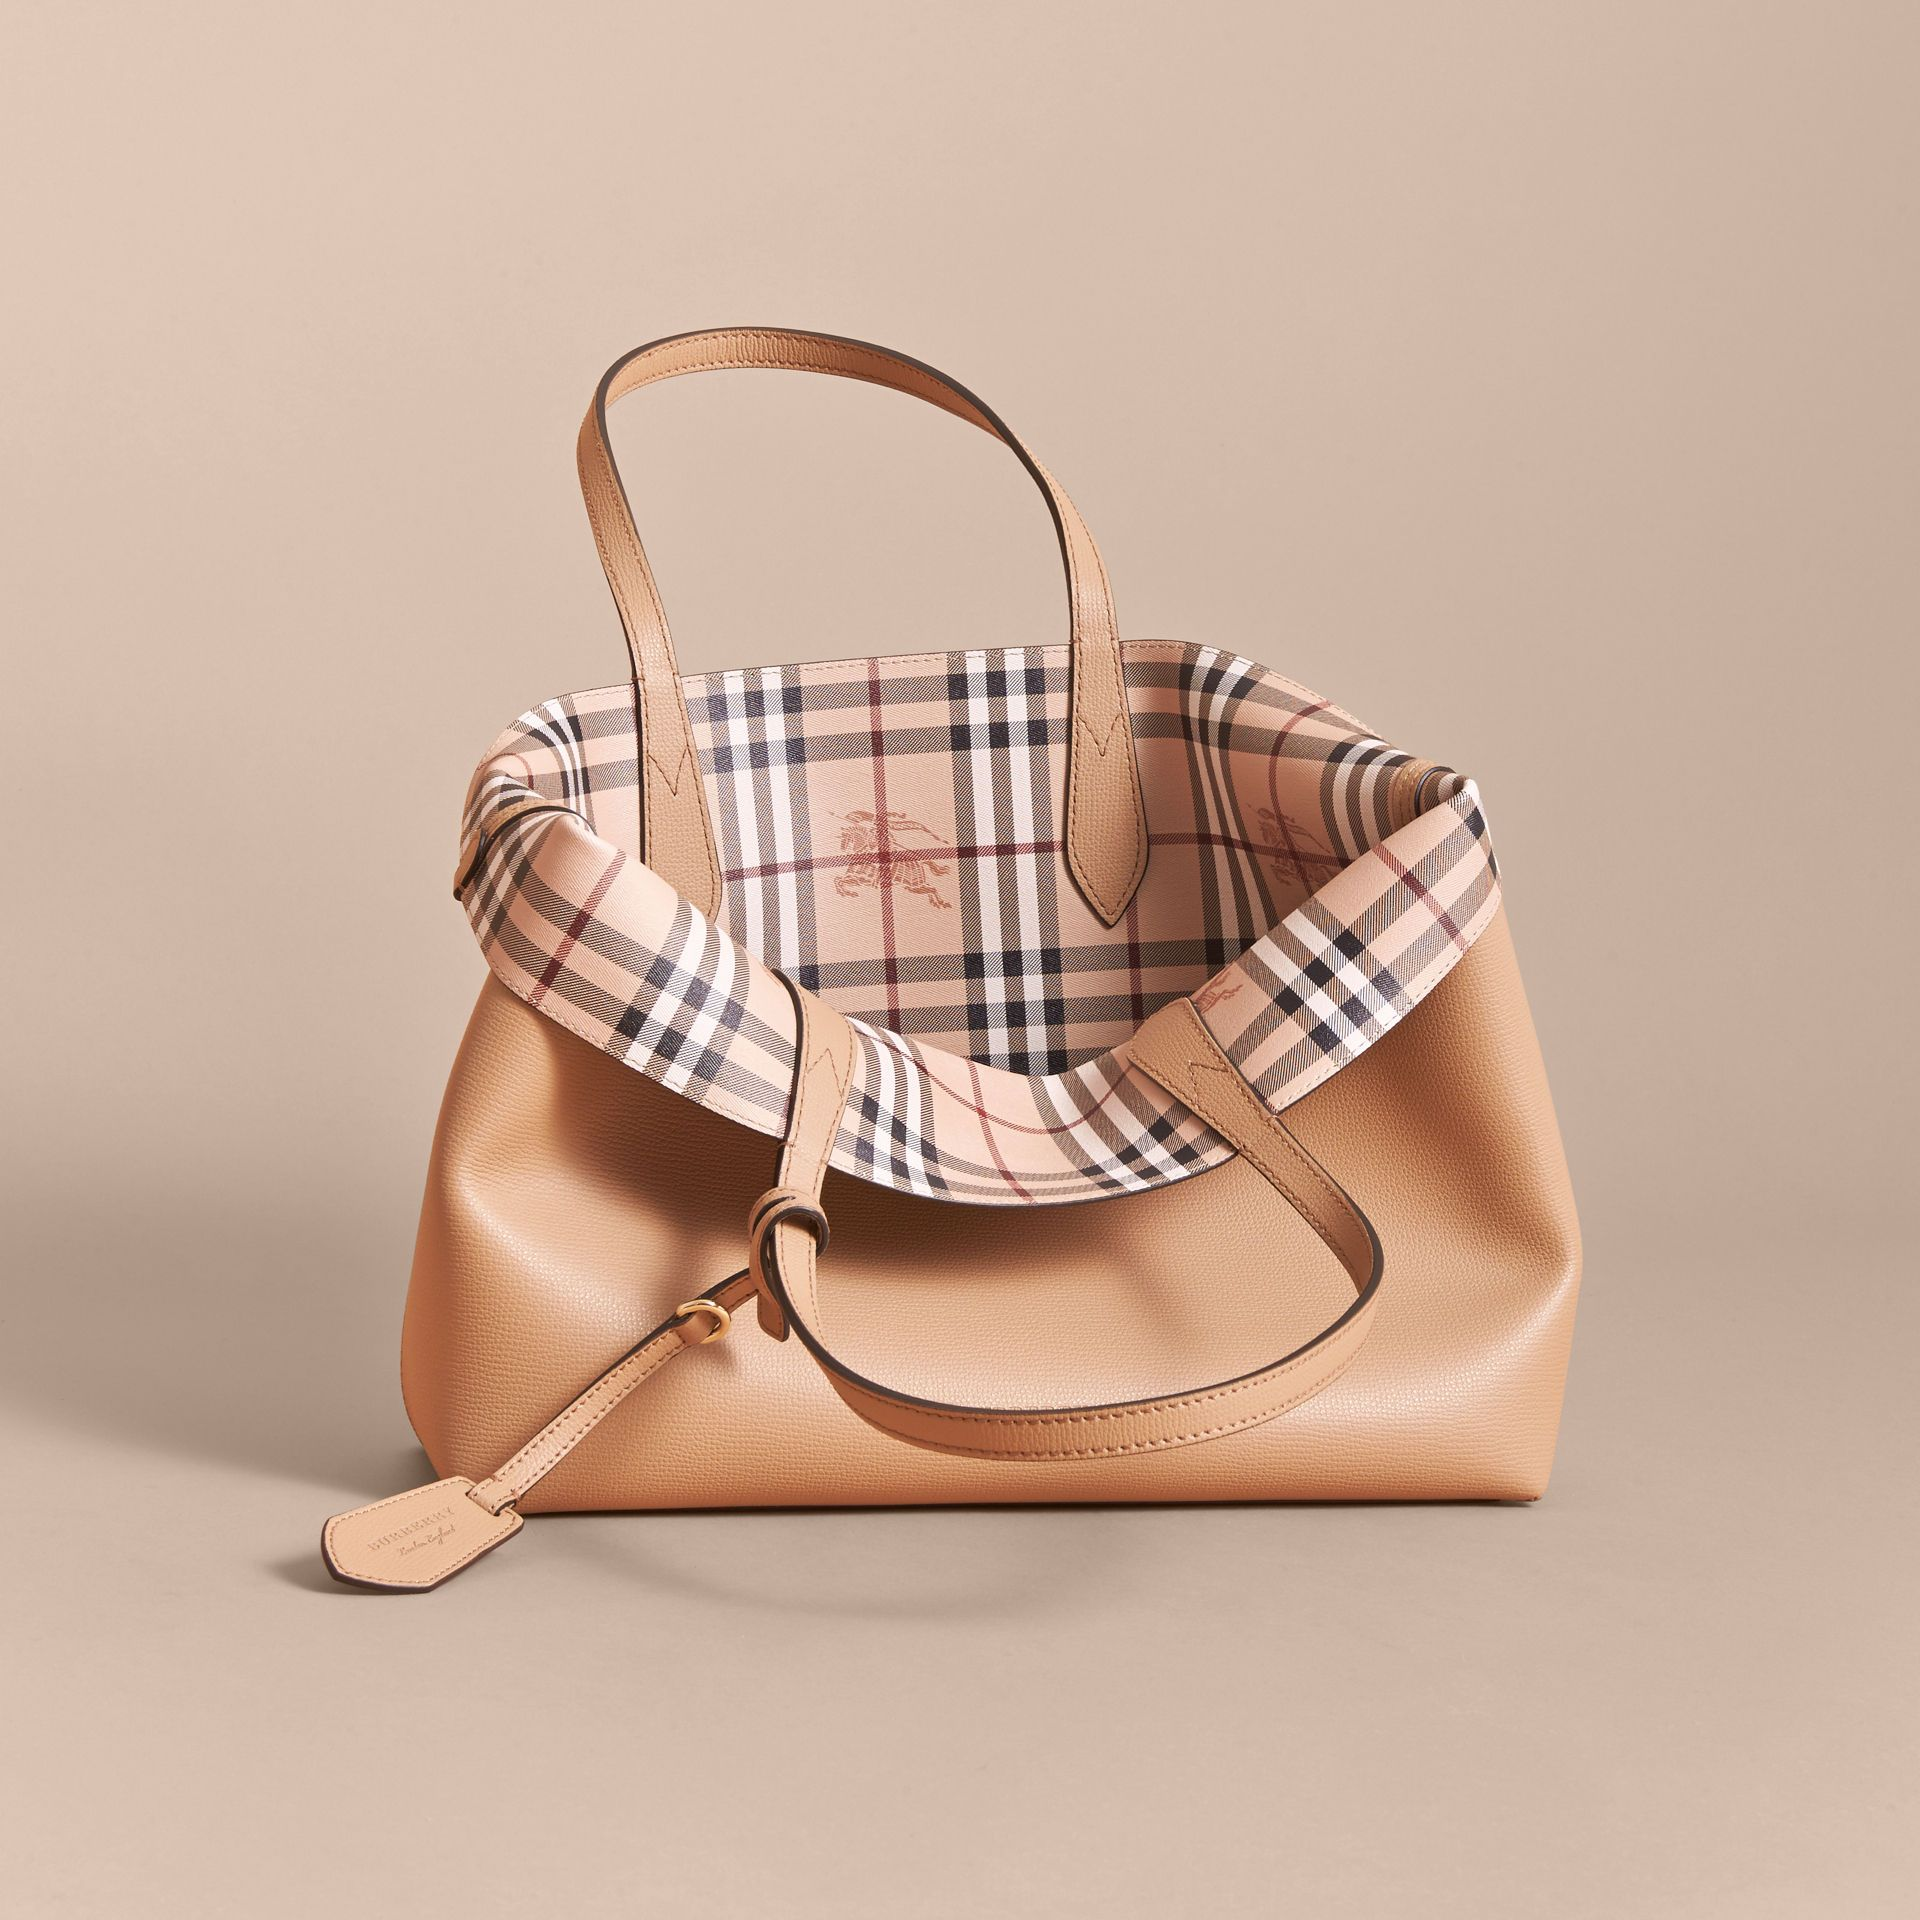 f4145698c0a2 Burberry - THE MEDIUM REVERSIBLE TOTE IN HAYMARKET CHECK AND LEATHER - Mid  Camel